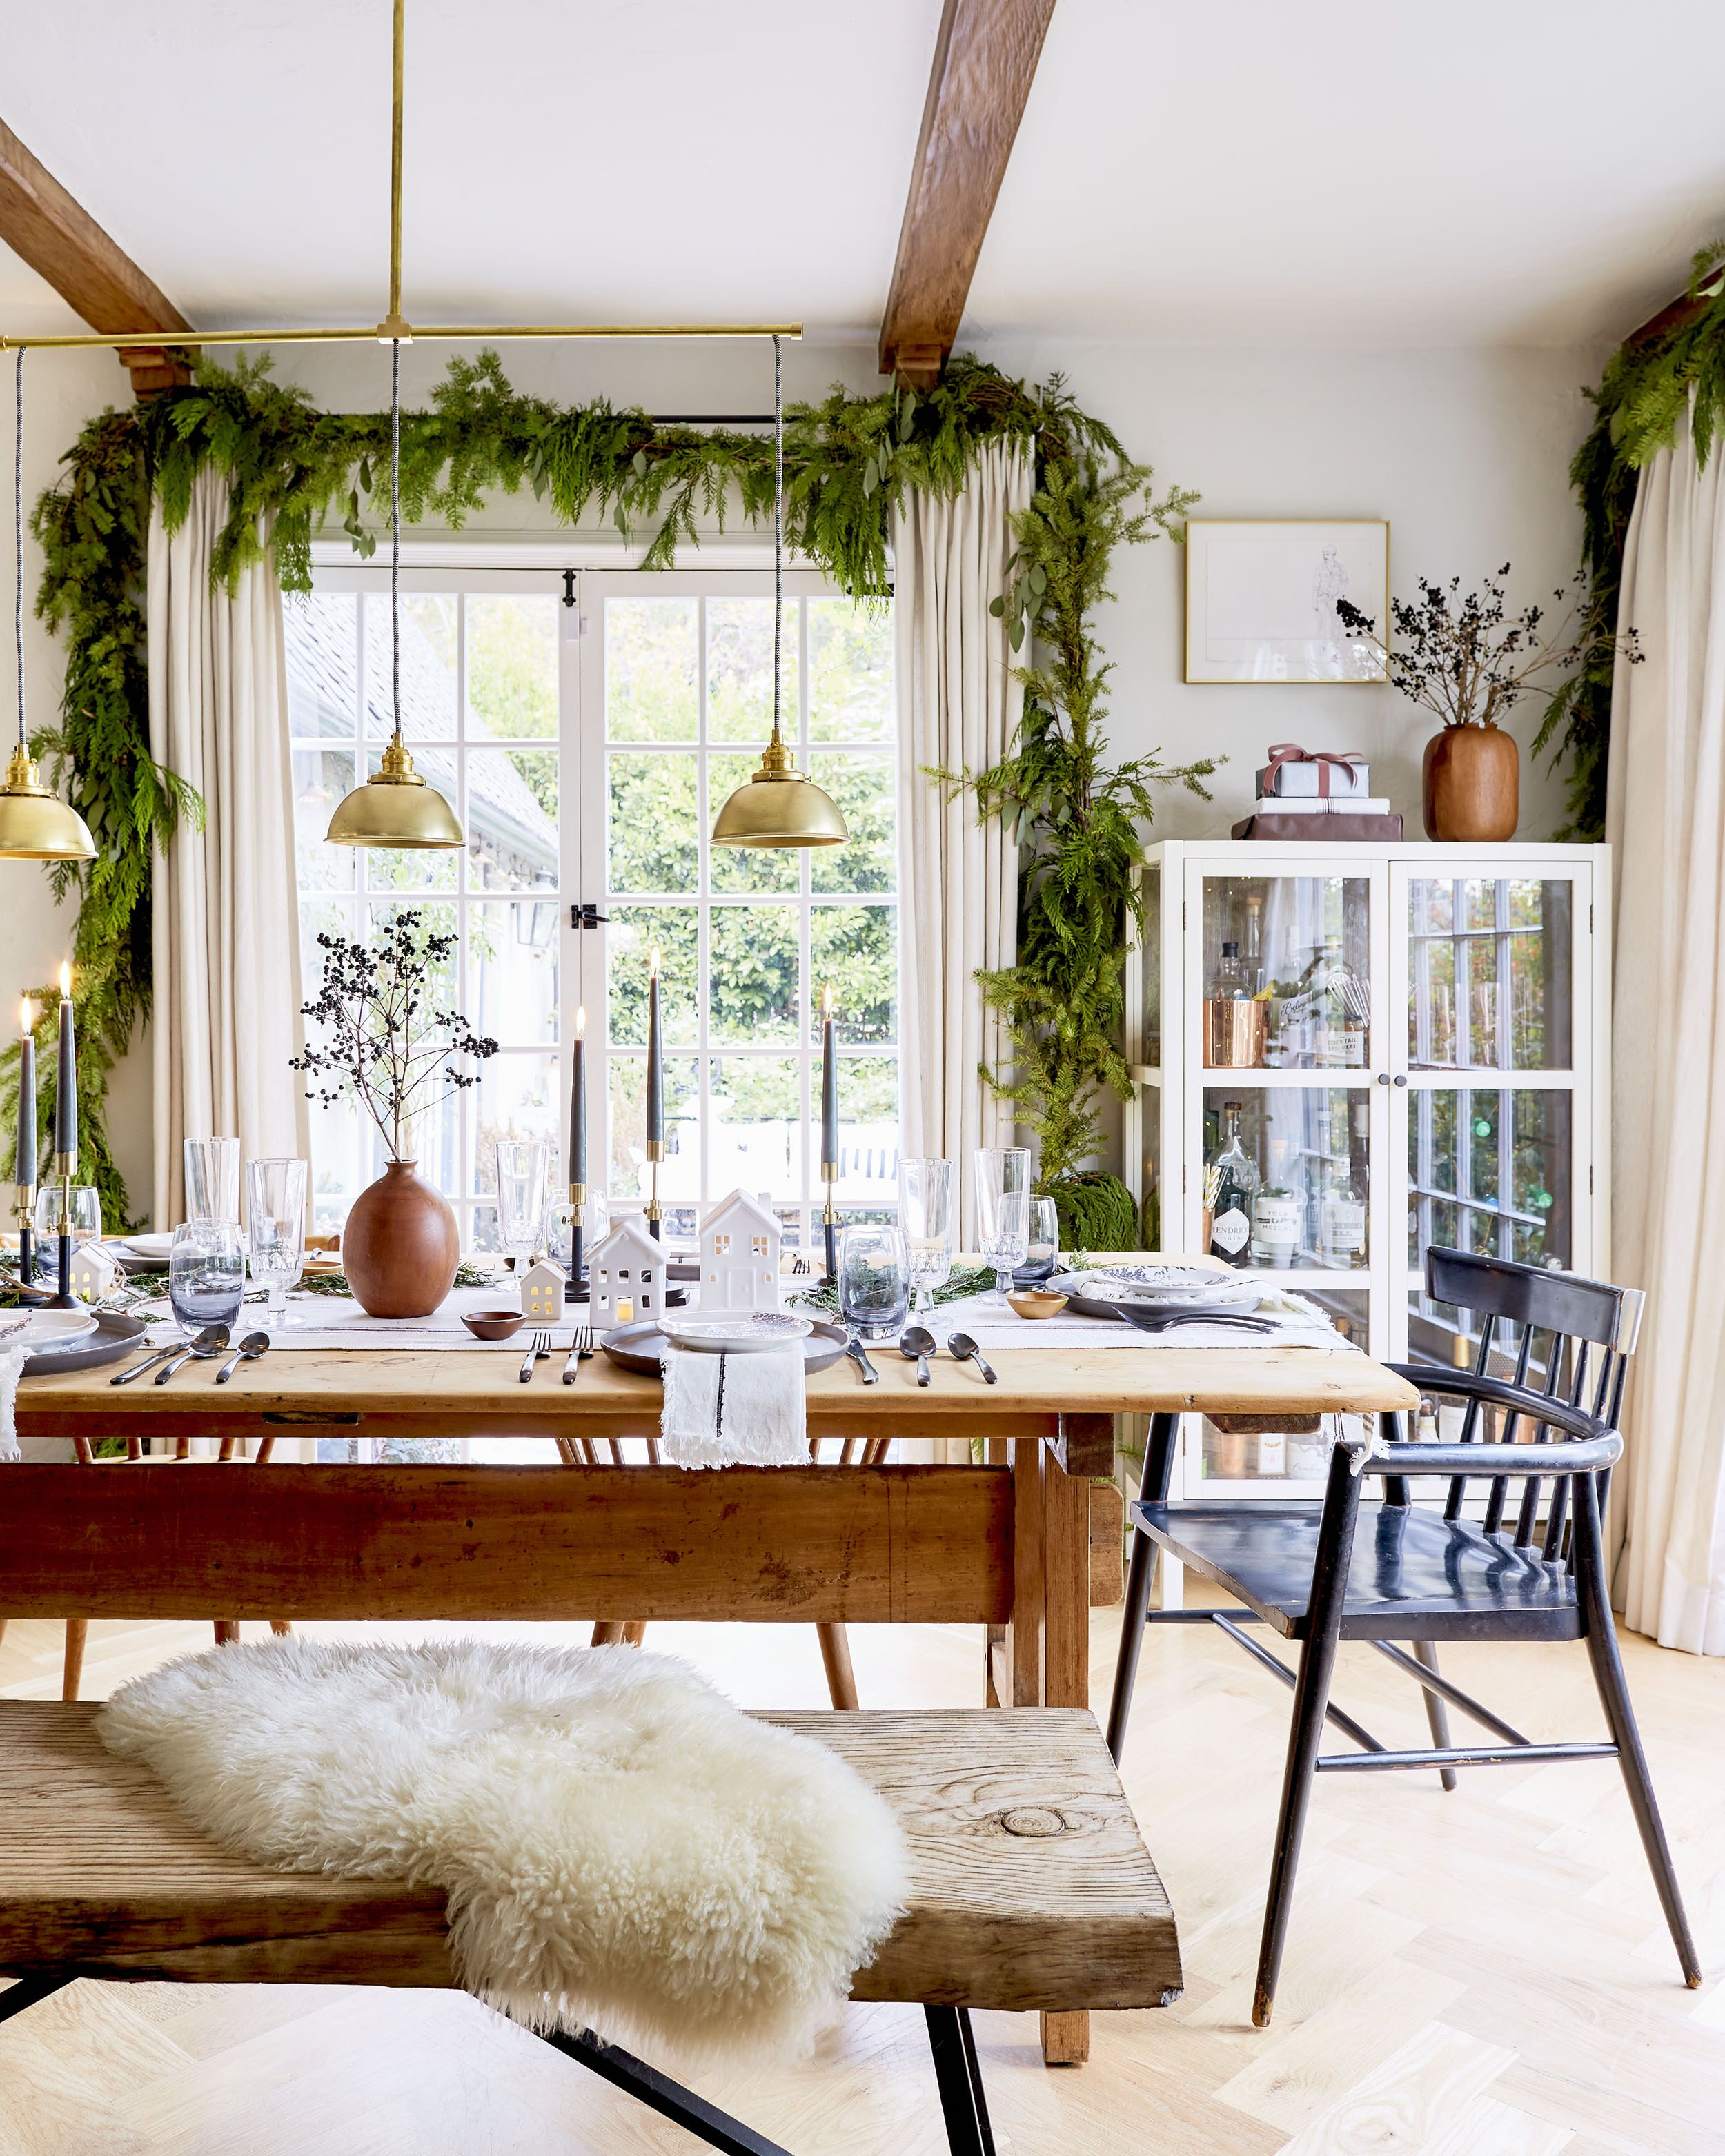 How To Create A Casual Affordable And Beautiful Holiday Tablescape All With Target Emily Henderson Dining Room Table Decor Dining Room Table Centerpieces Christmas Dining Room